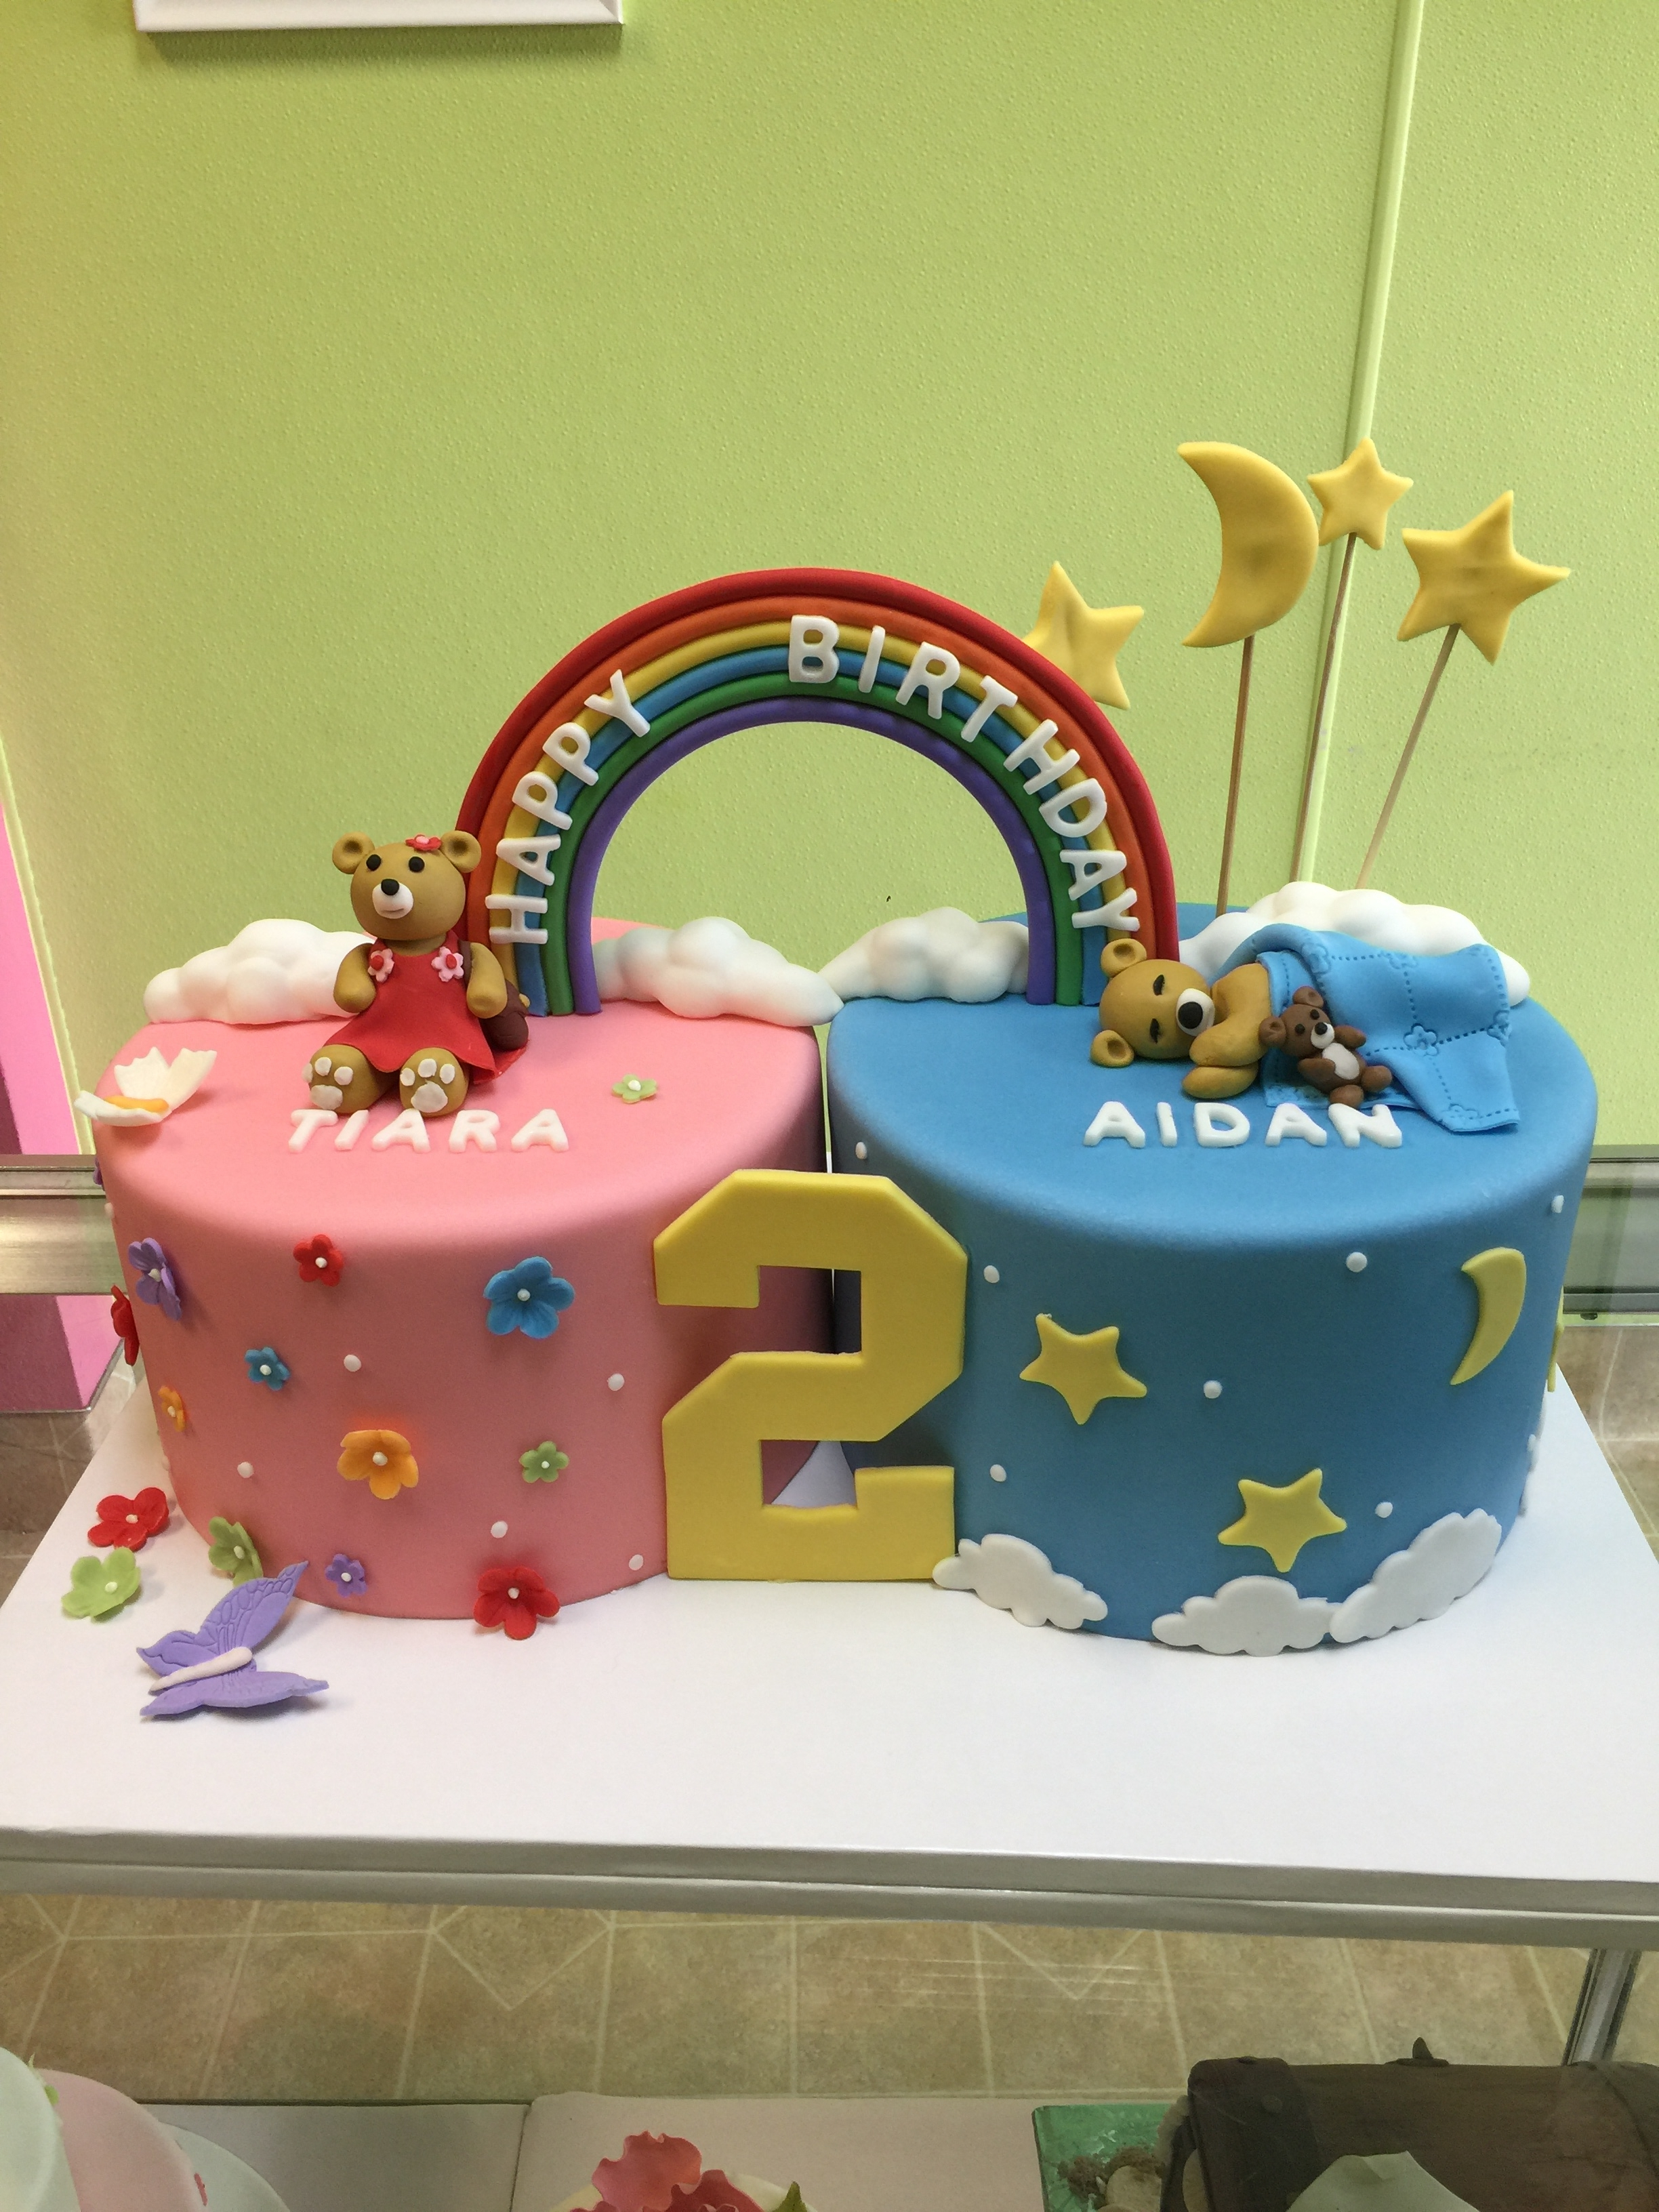 2972, second birthday, 2nd birthday, rainbow, bear, bears, teddy bear, flower, flowers, star, stars, moon, clouds, cloud, twin